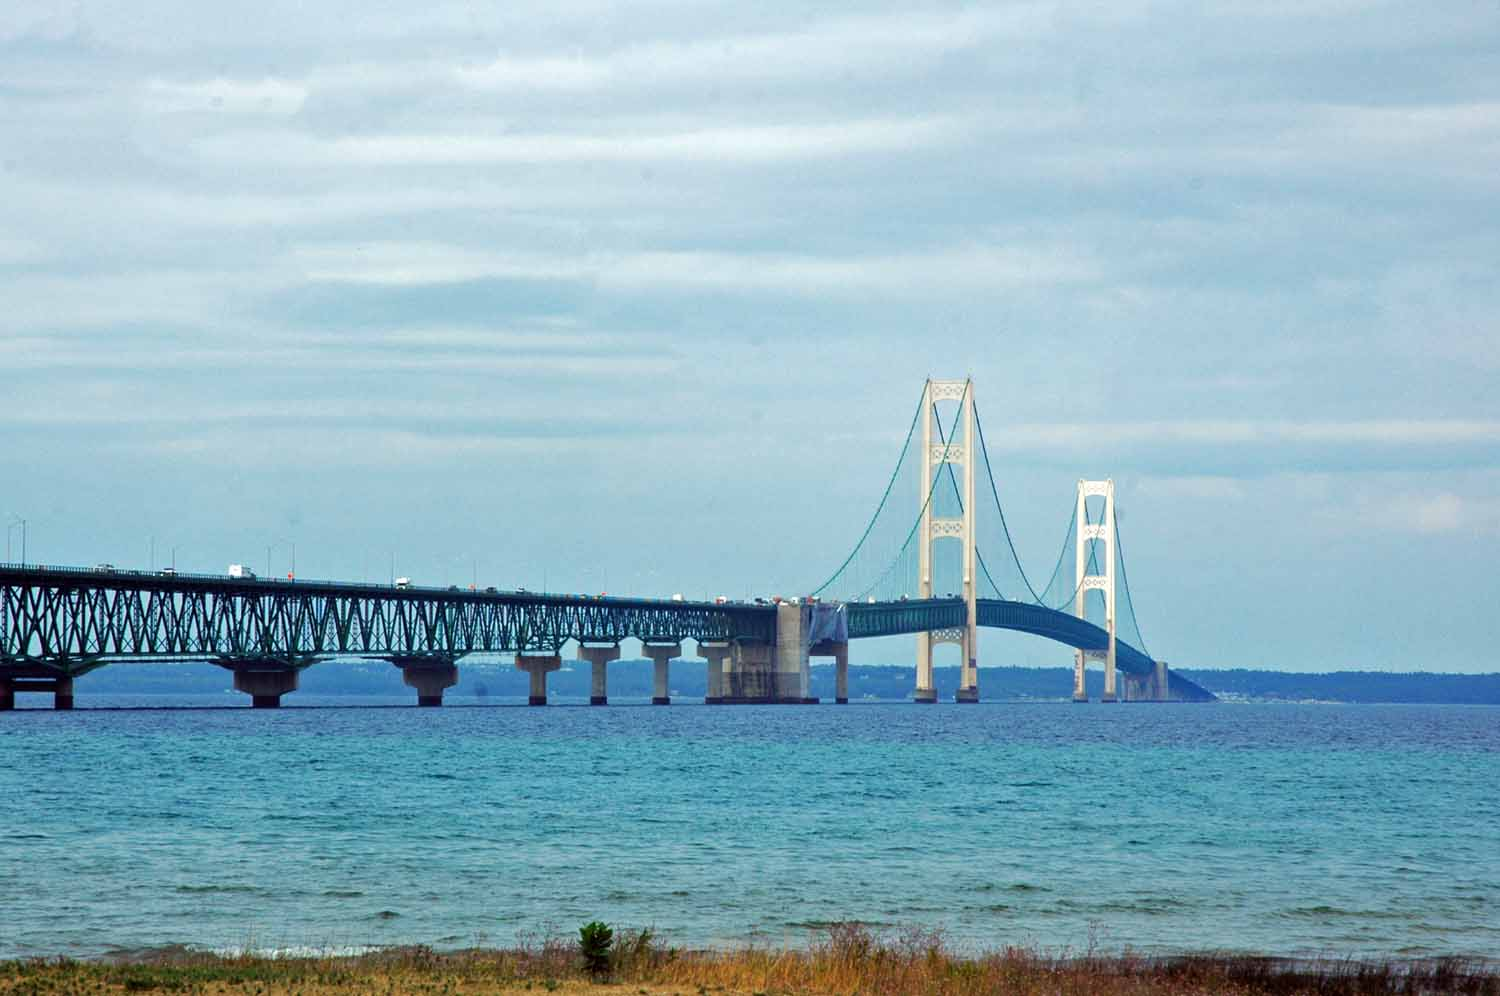 A stop to view the Mackinac Bridge is a must